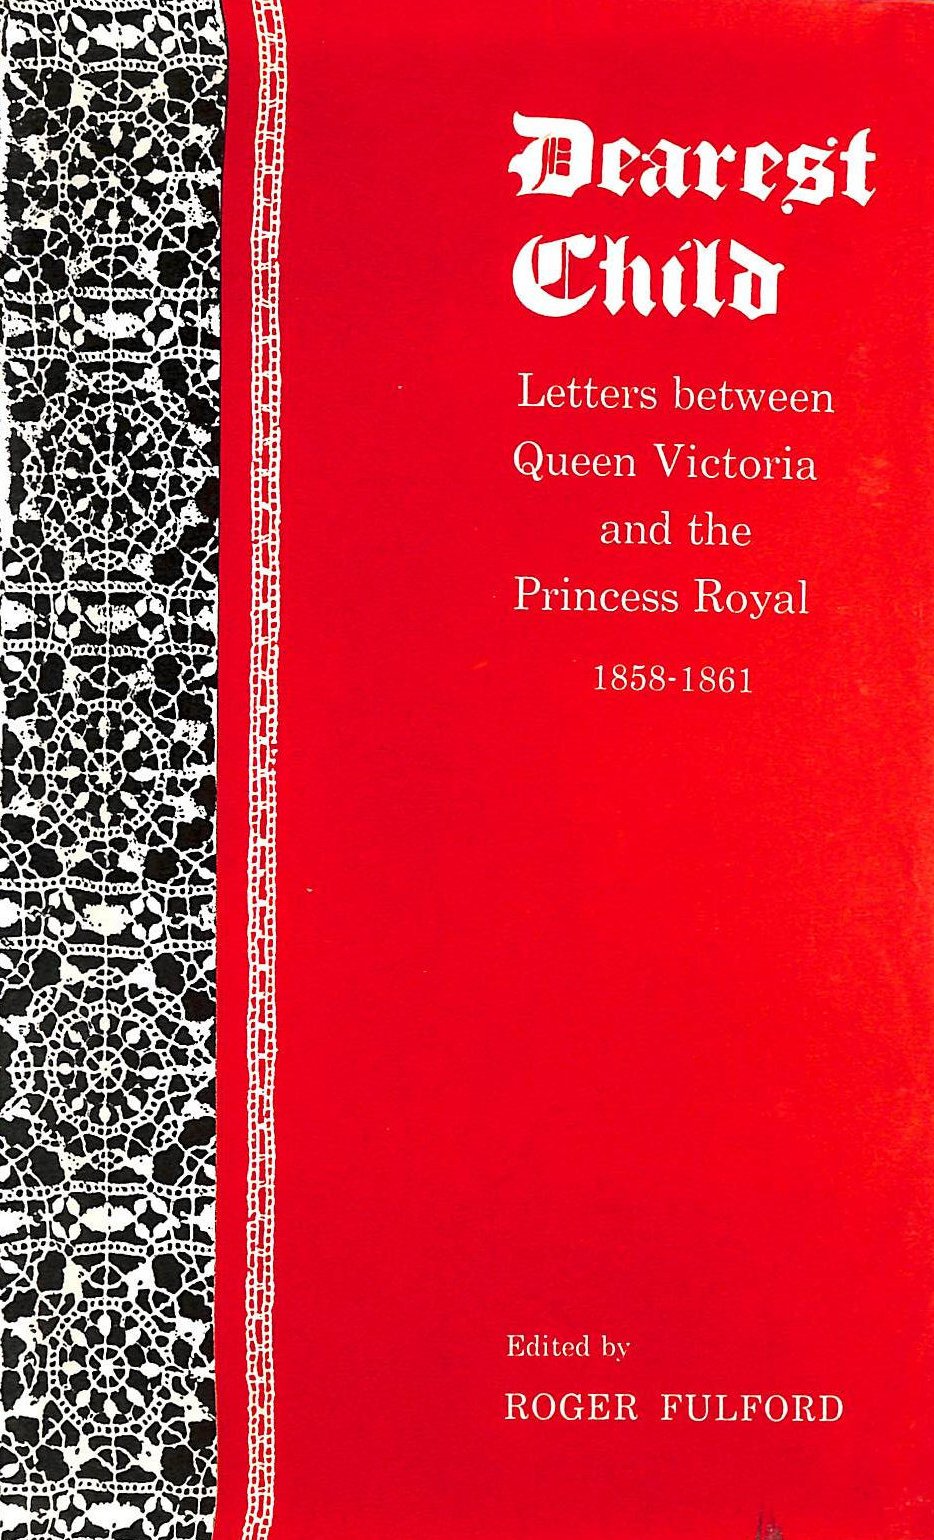 Image for Dearest Child: Letters between Queen Victoria and the Princess Royal, 1858-1861